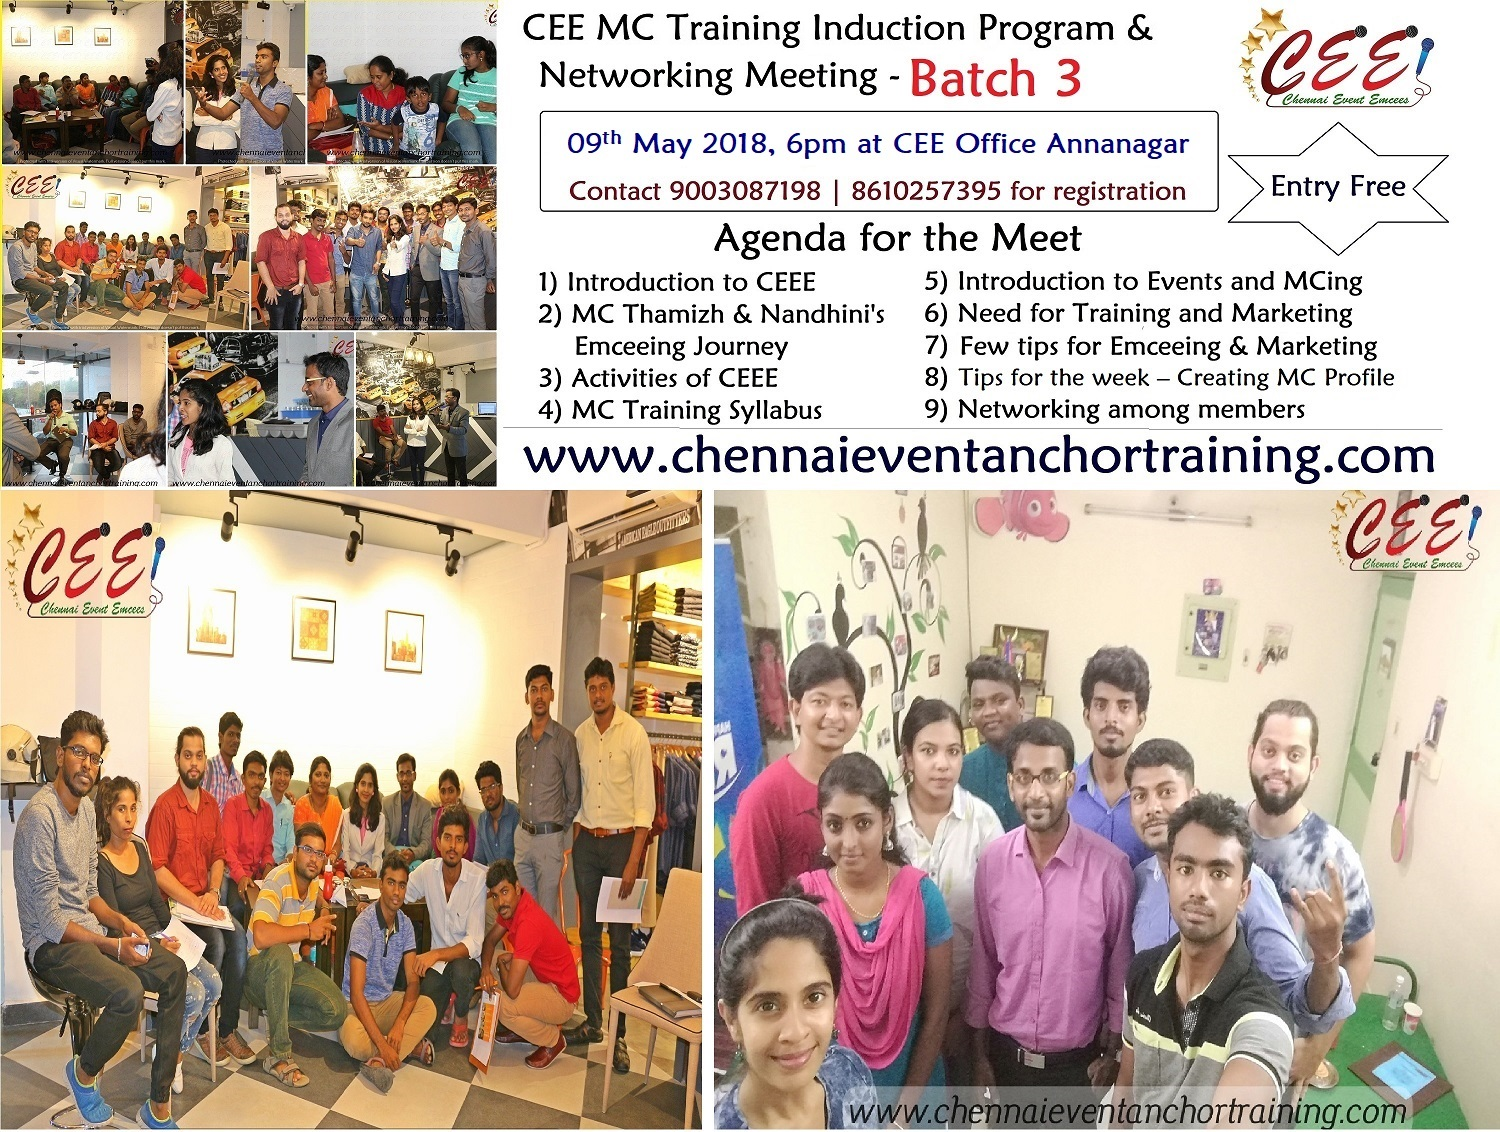 CEE MC Training Induction Program and Networking Meeting on 09th May 2018 Wednesday 6pm at Annanagar CEE Office